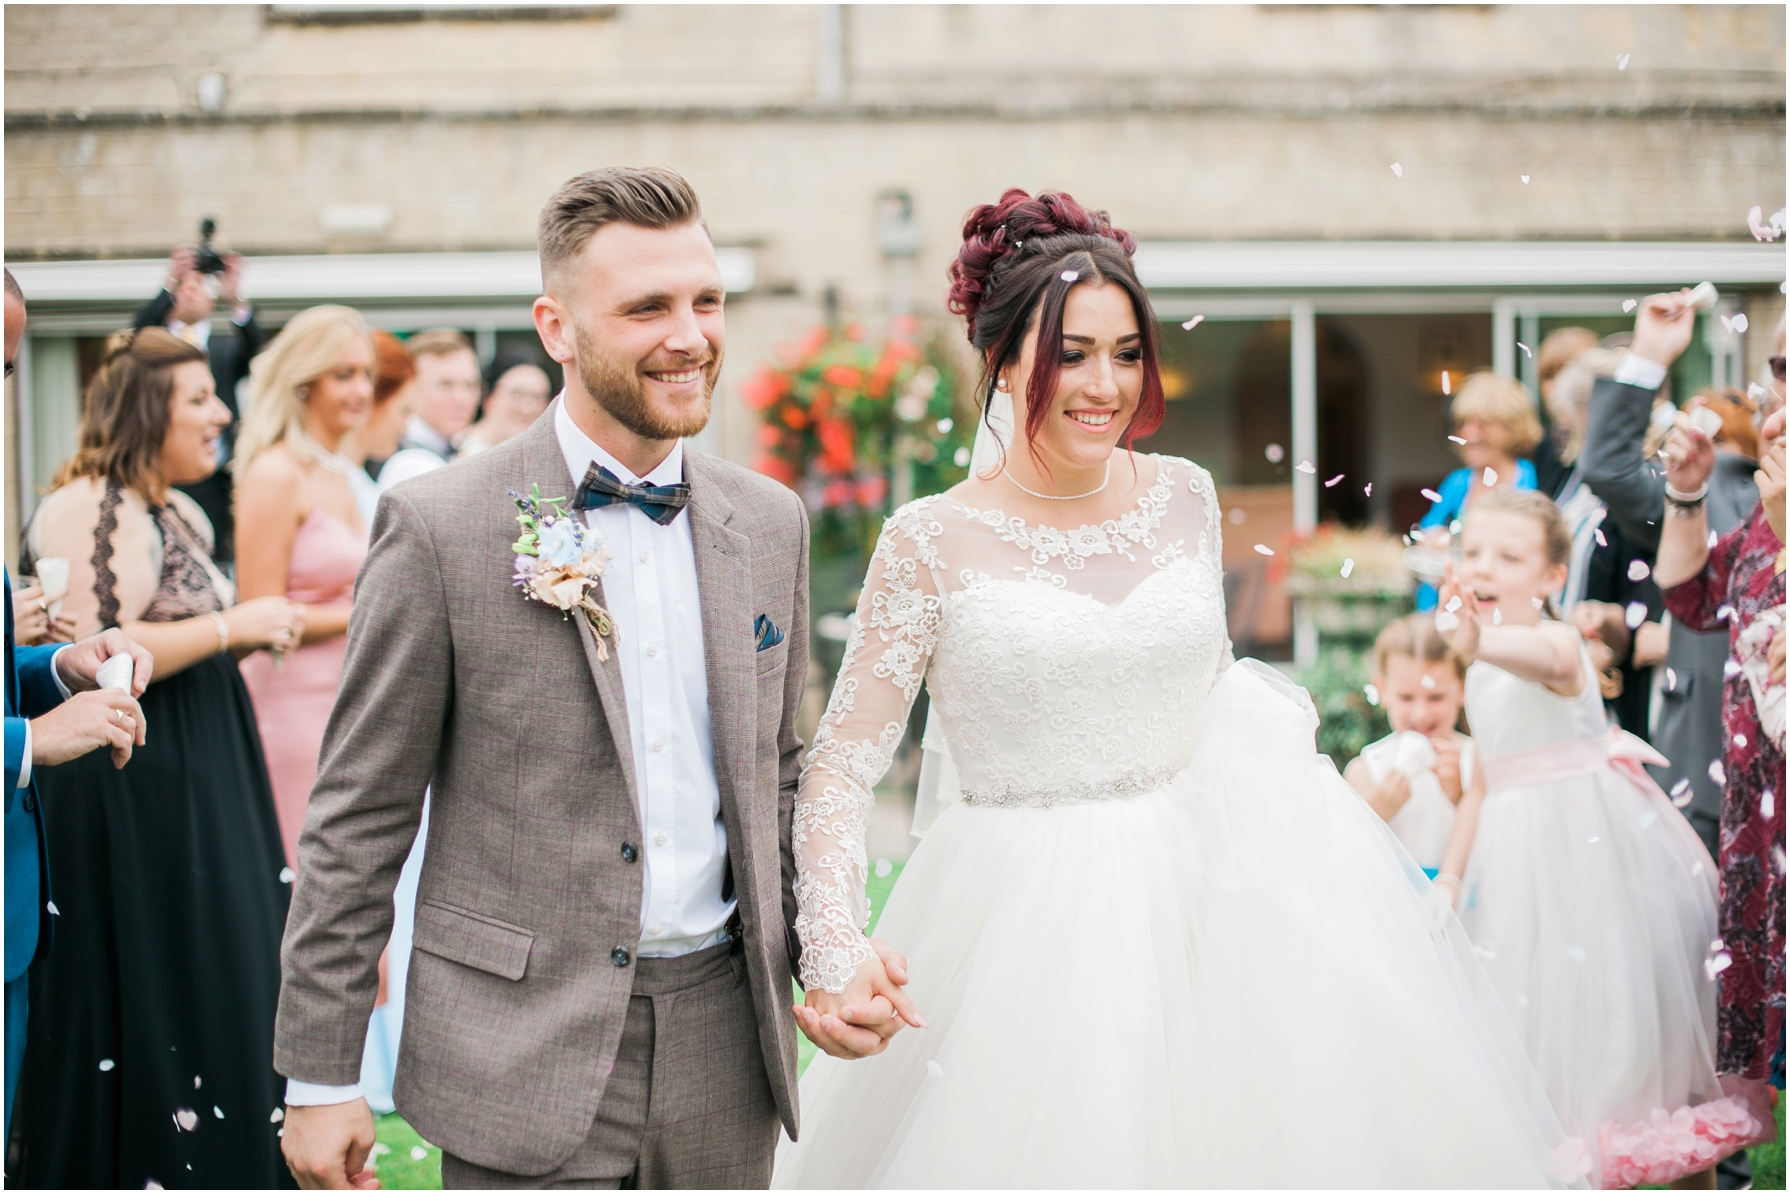 guests throwing confetti over the bride and groom at stratton house hotel